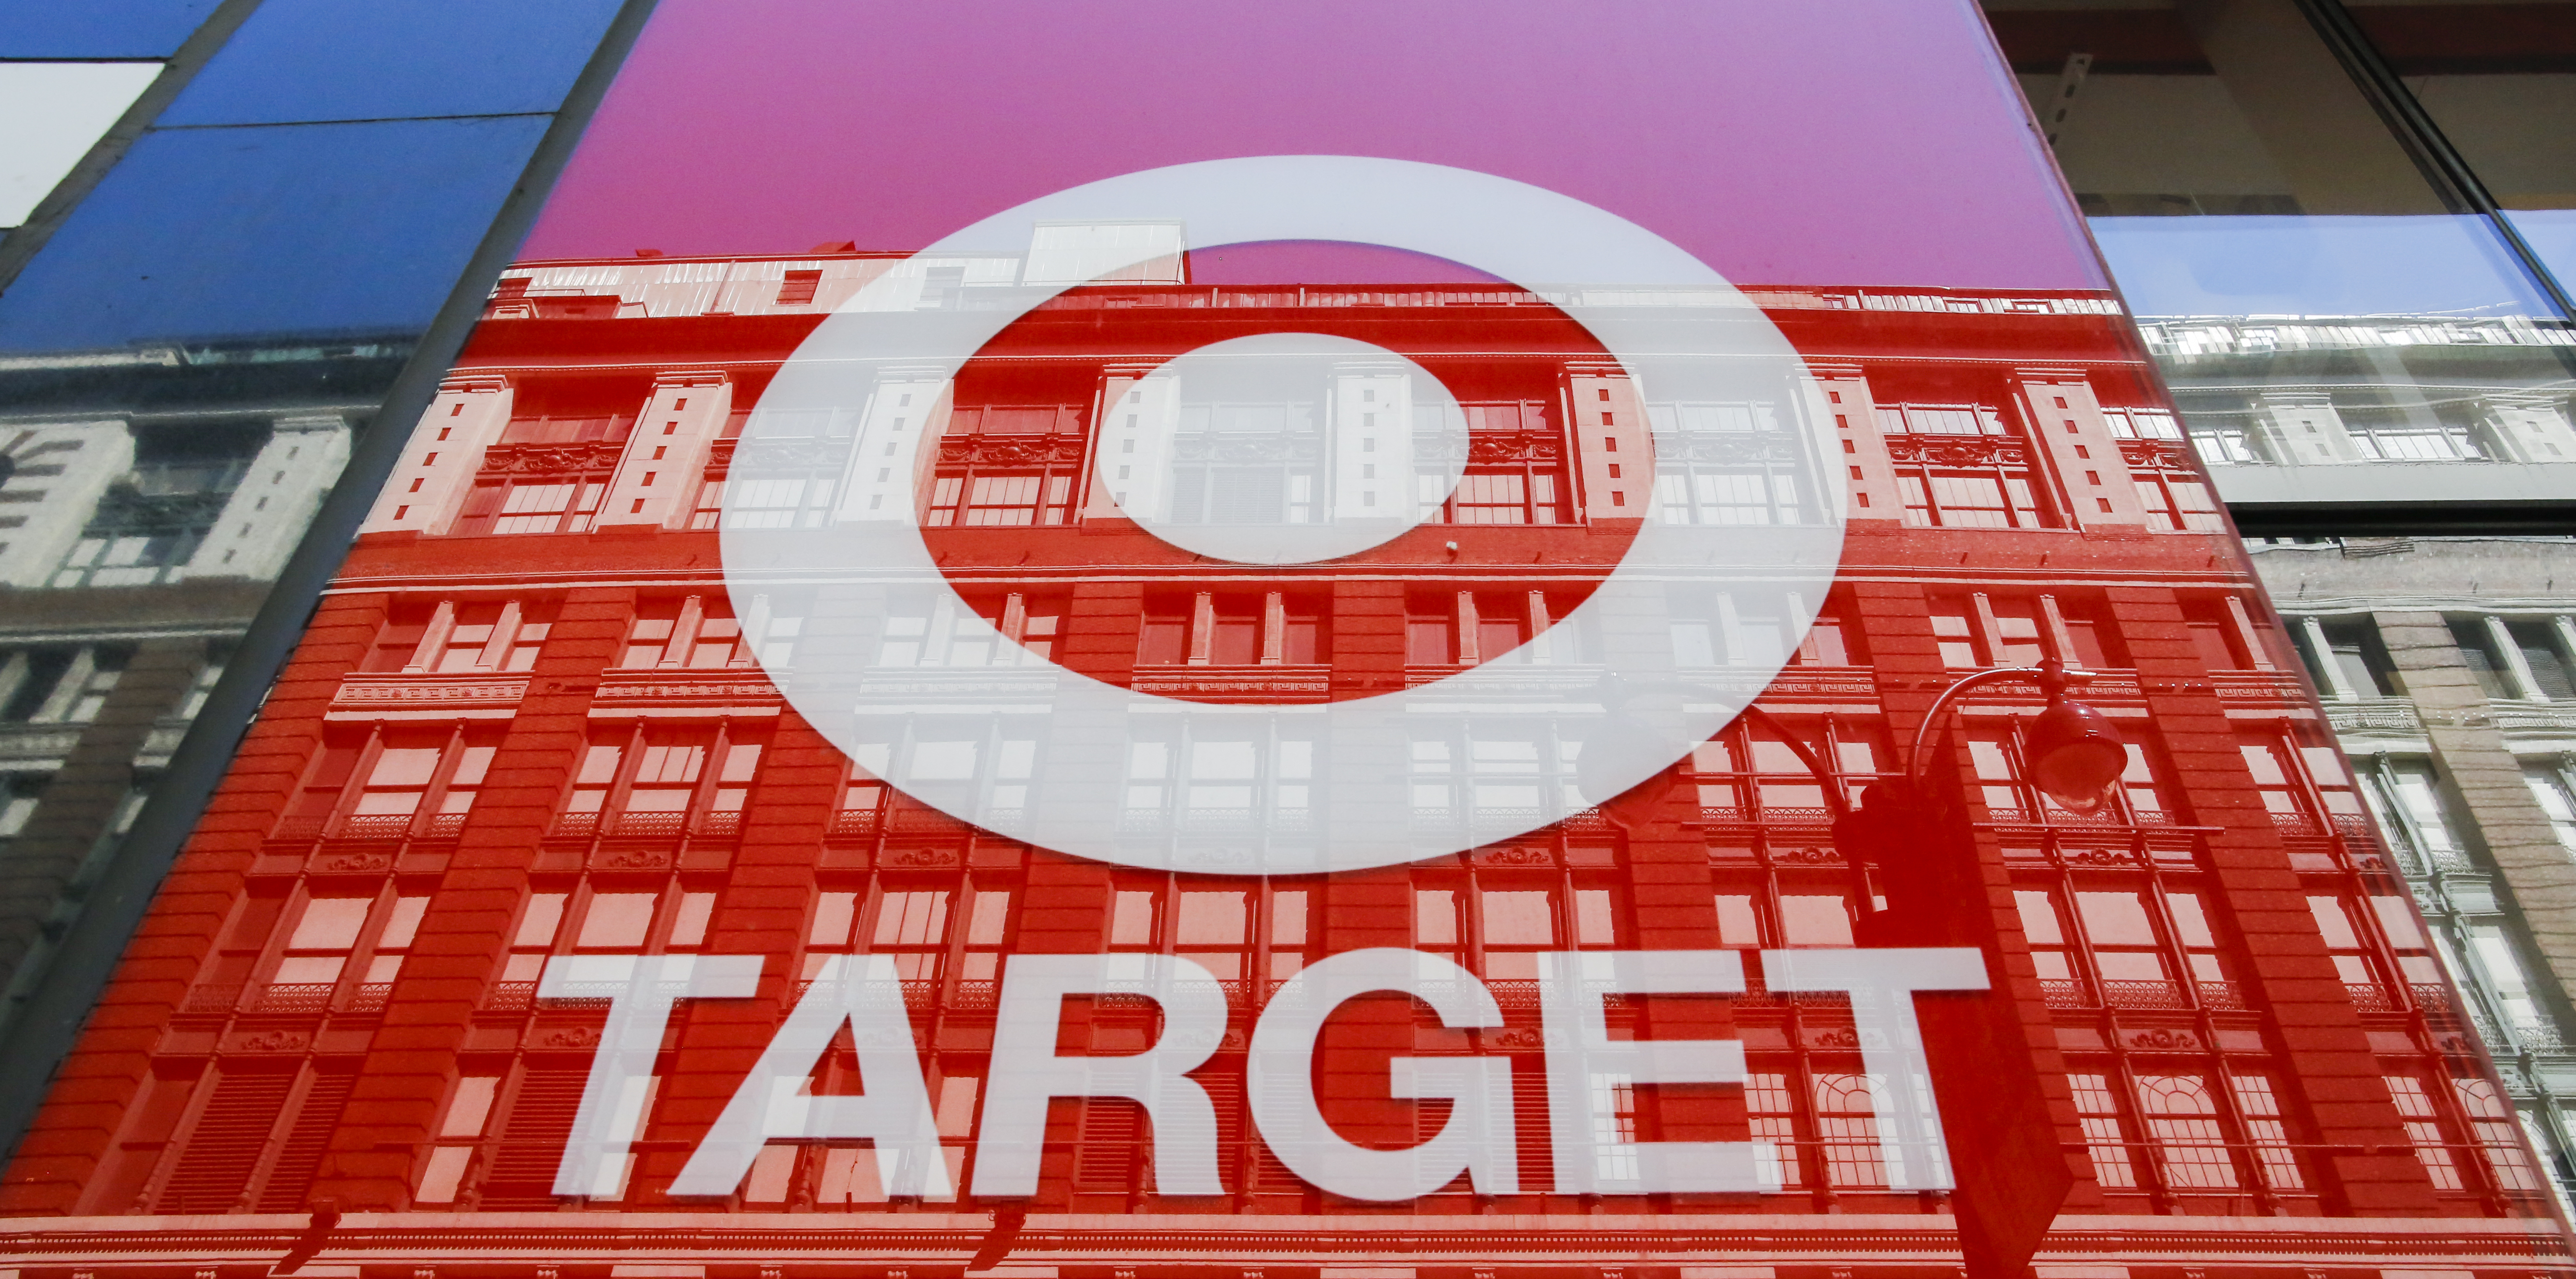 The Target logo on the facade of a building.